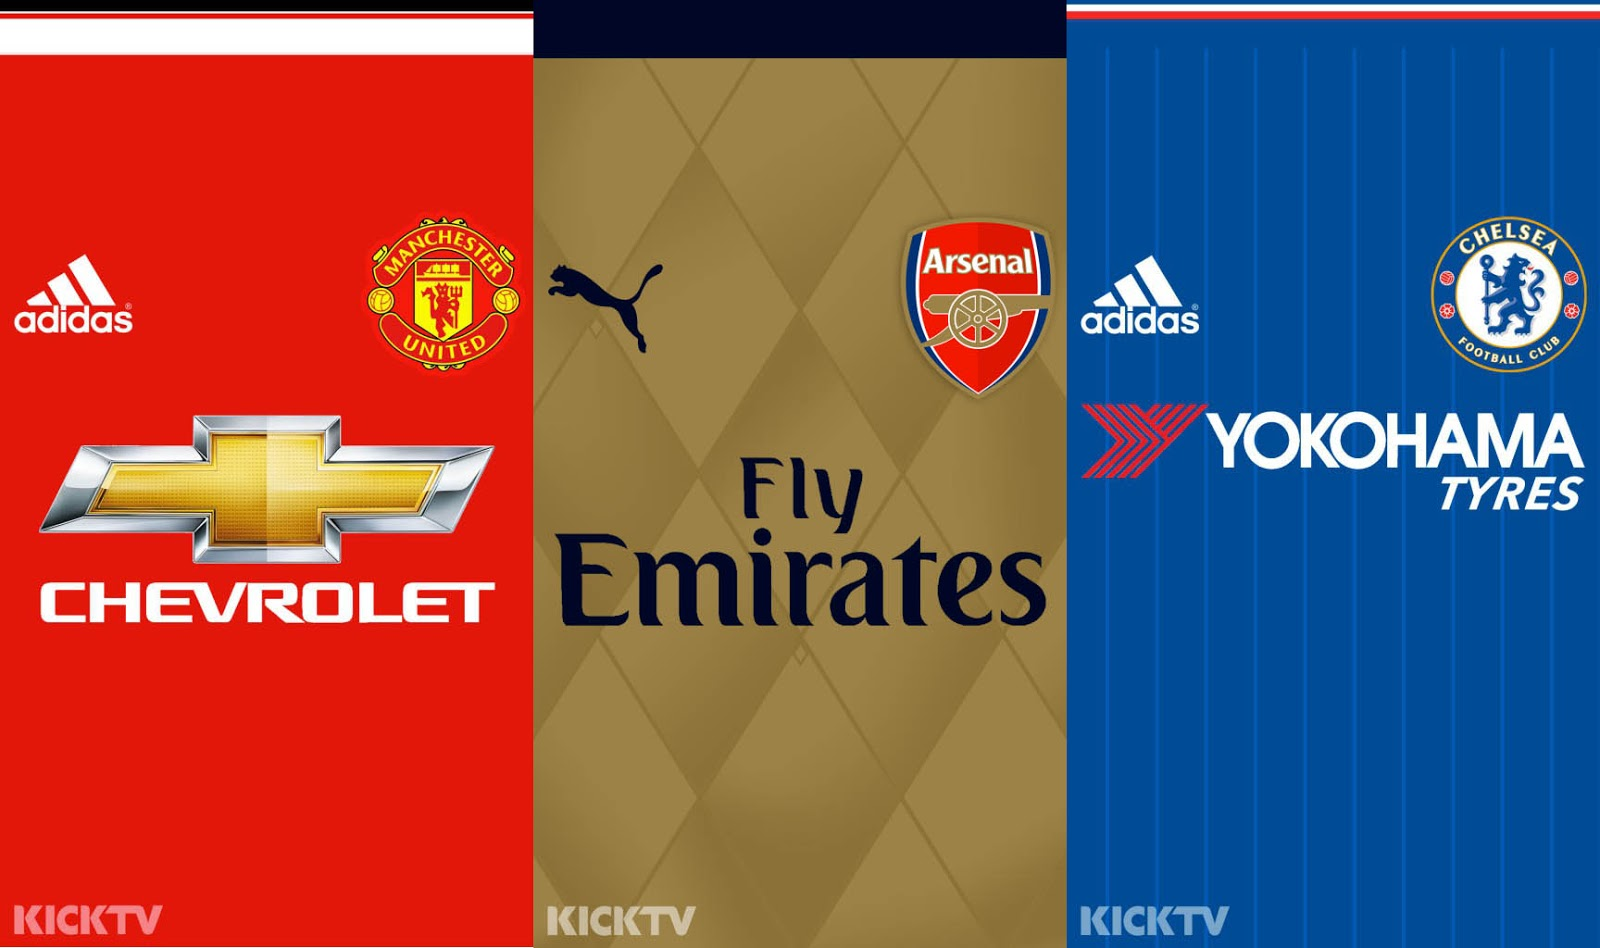 Premier League 15-16 Kit Mobile Wallpapers - Footy Headlines